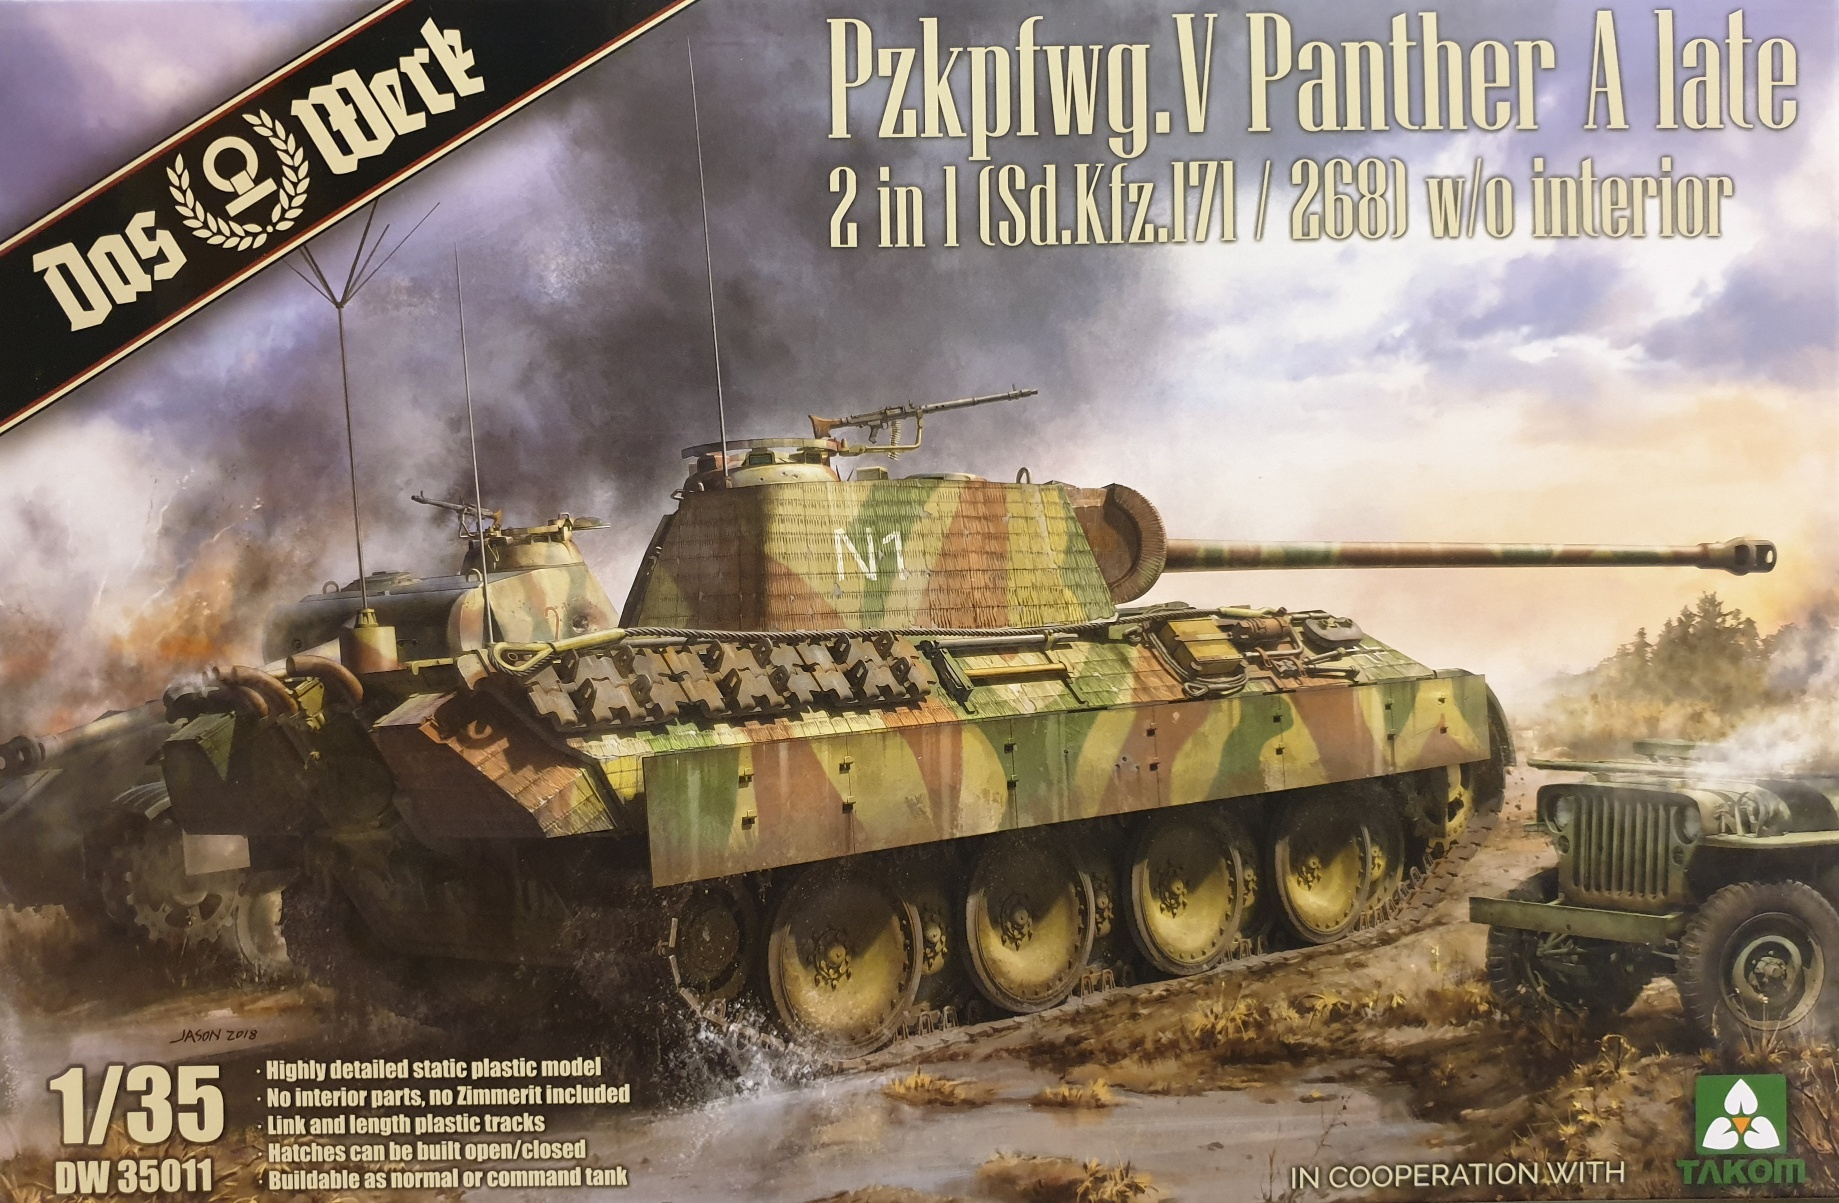 Das Werk DW35011 Pzkpfwg. V Panther A late 2 in 1